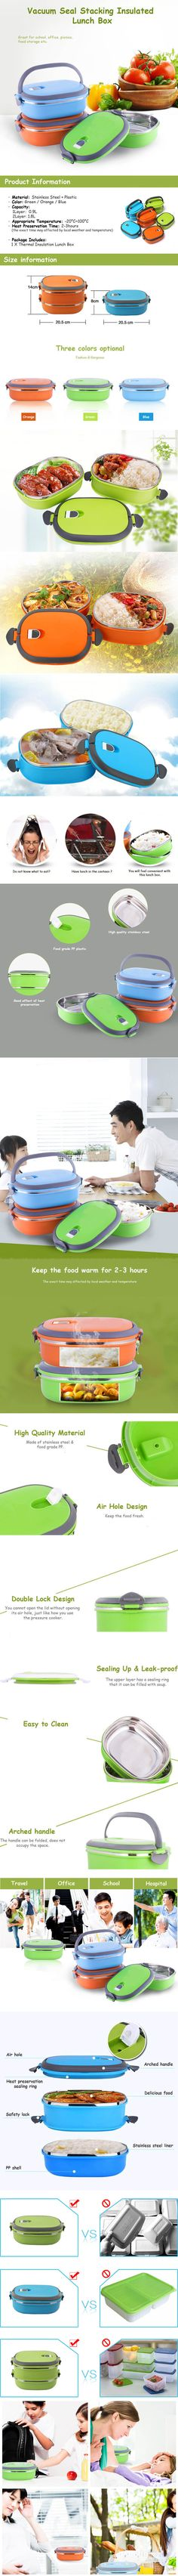 Vacuum Seal Stacking Insulated Lunch Box Stainless Steel Thermal Insulation Bento Box Dual Handle Container Cheap - NewChic Mobile.